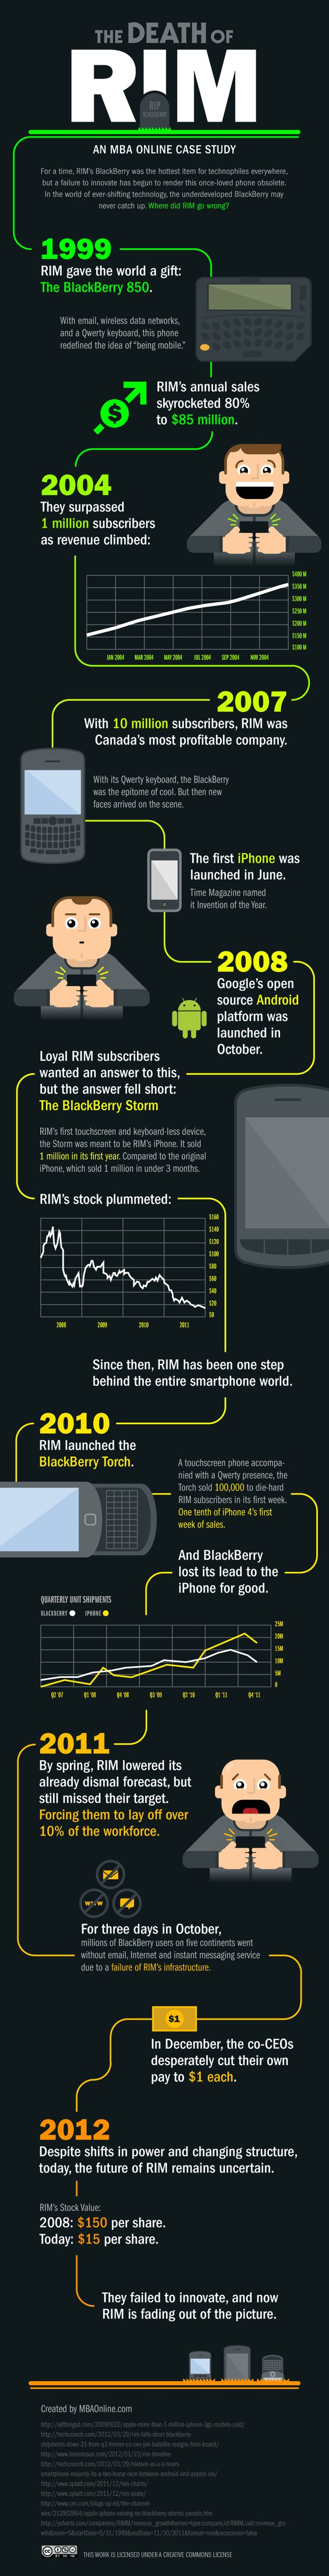 The Death of RIM #blackberry